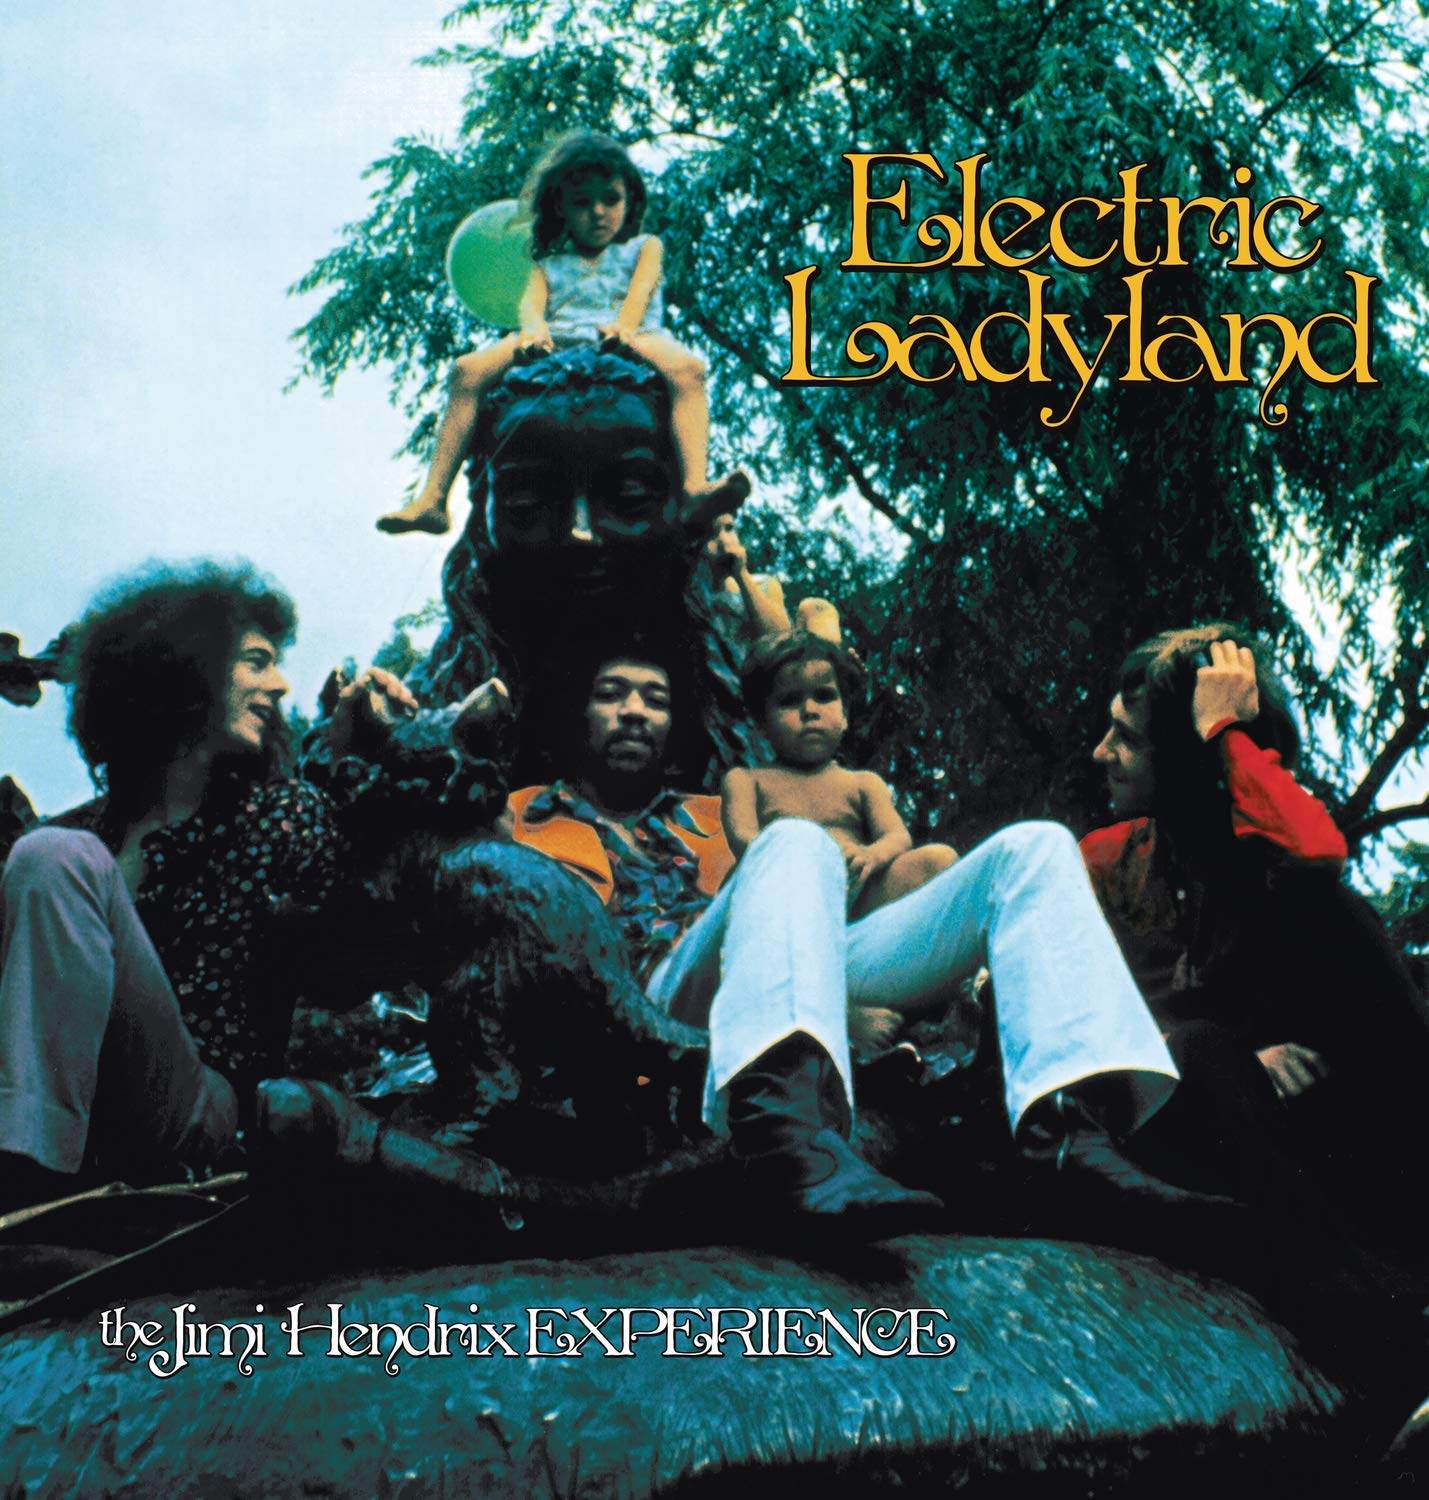 The Jimi Hendrix Experience: Electric Ladyland — Deluxe Edition (50th Anniversary Box Set) « American Songwriter